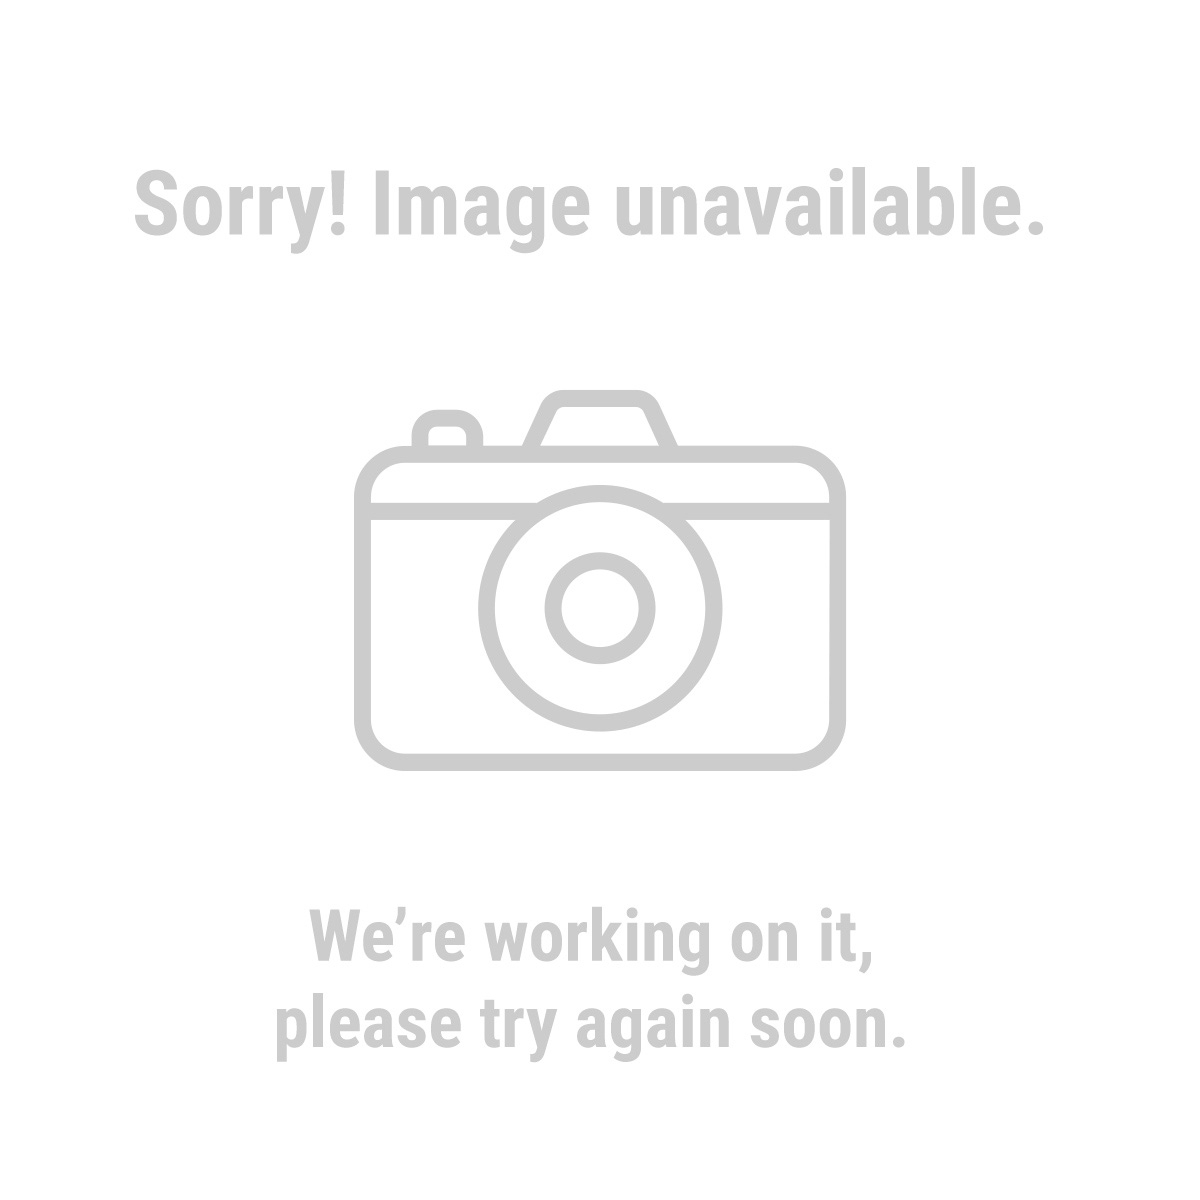 HFT 98945 Pack of 4 13 Watt Spiral Bulbs